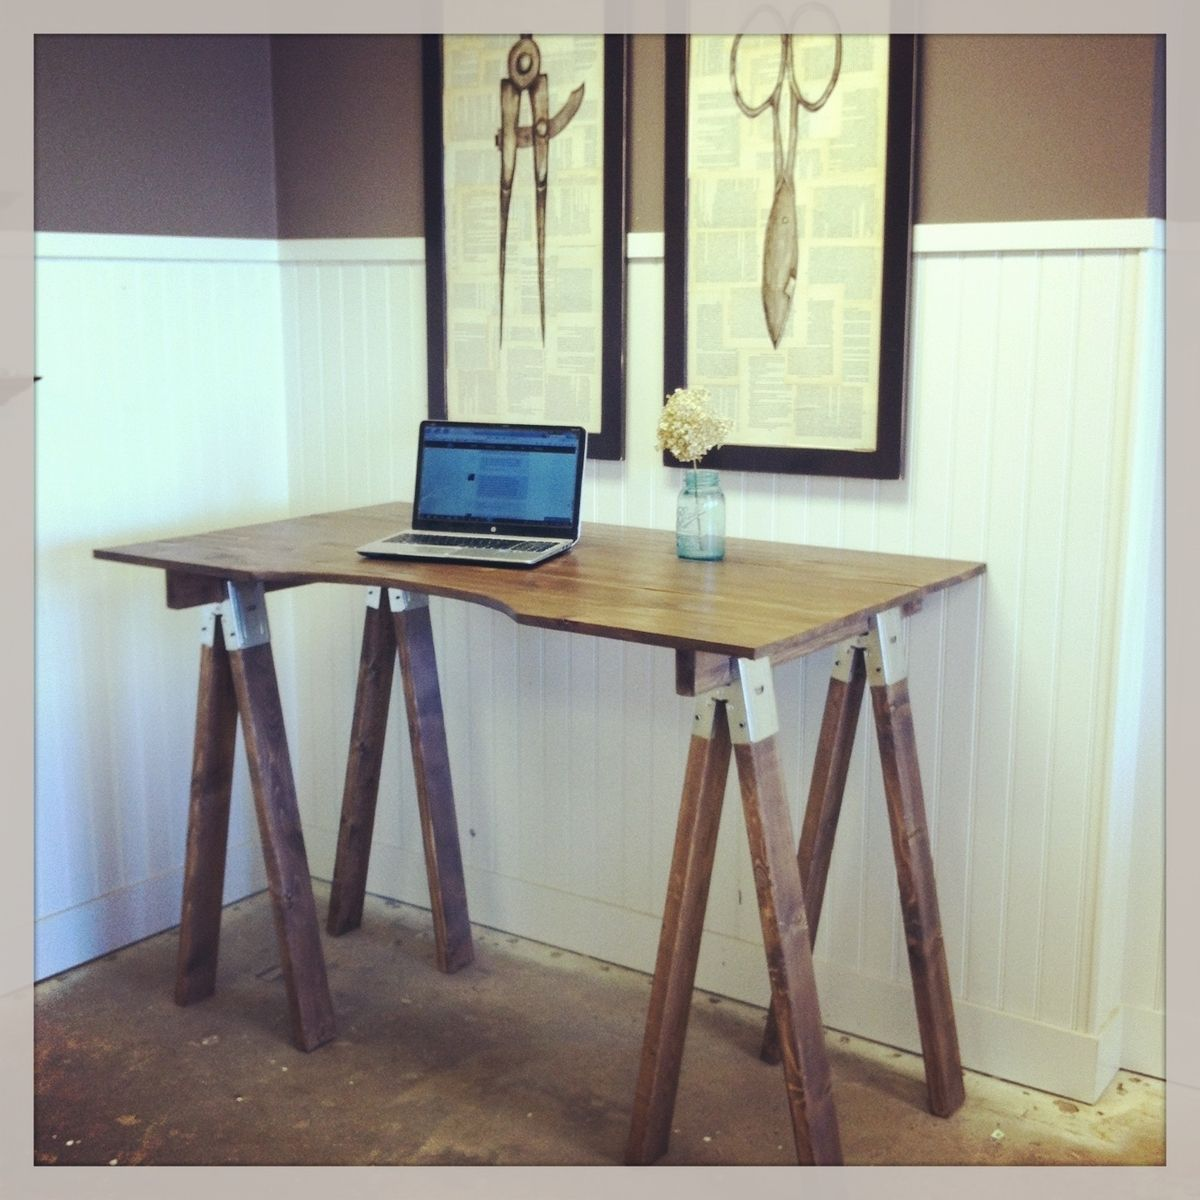 Handmade sawhorse desk by sb designs Sawhorse desk legs